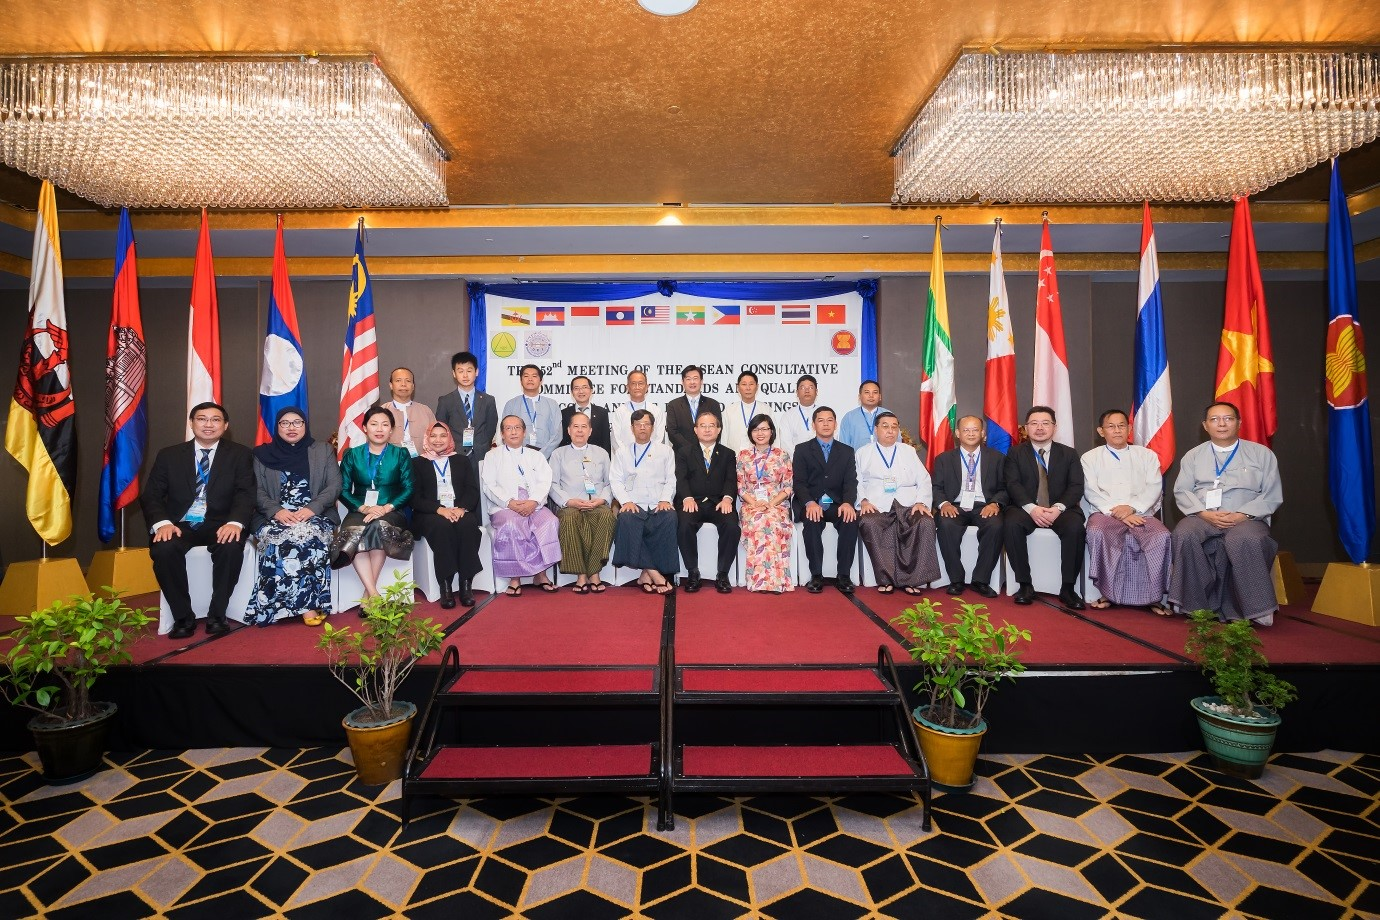 The 52<sup>nd</sup> Meeting of Asean Consultative committee for Standards and Quality (ACCSQ) and Its related meetings